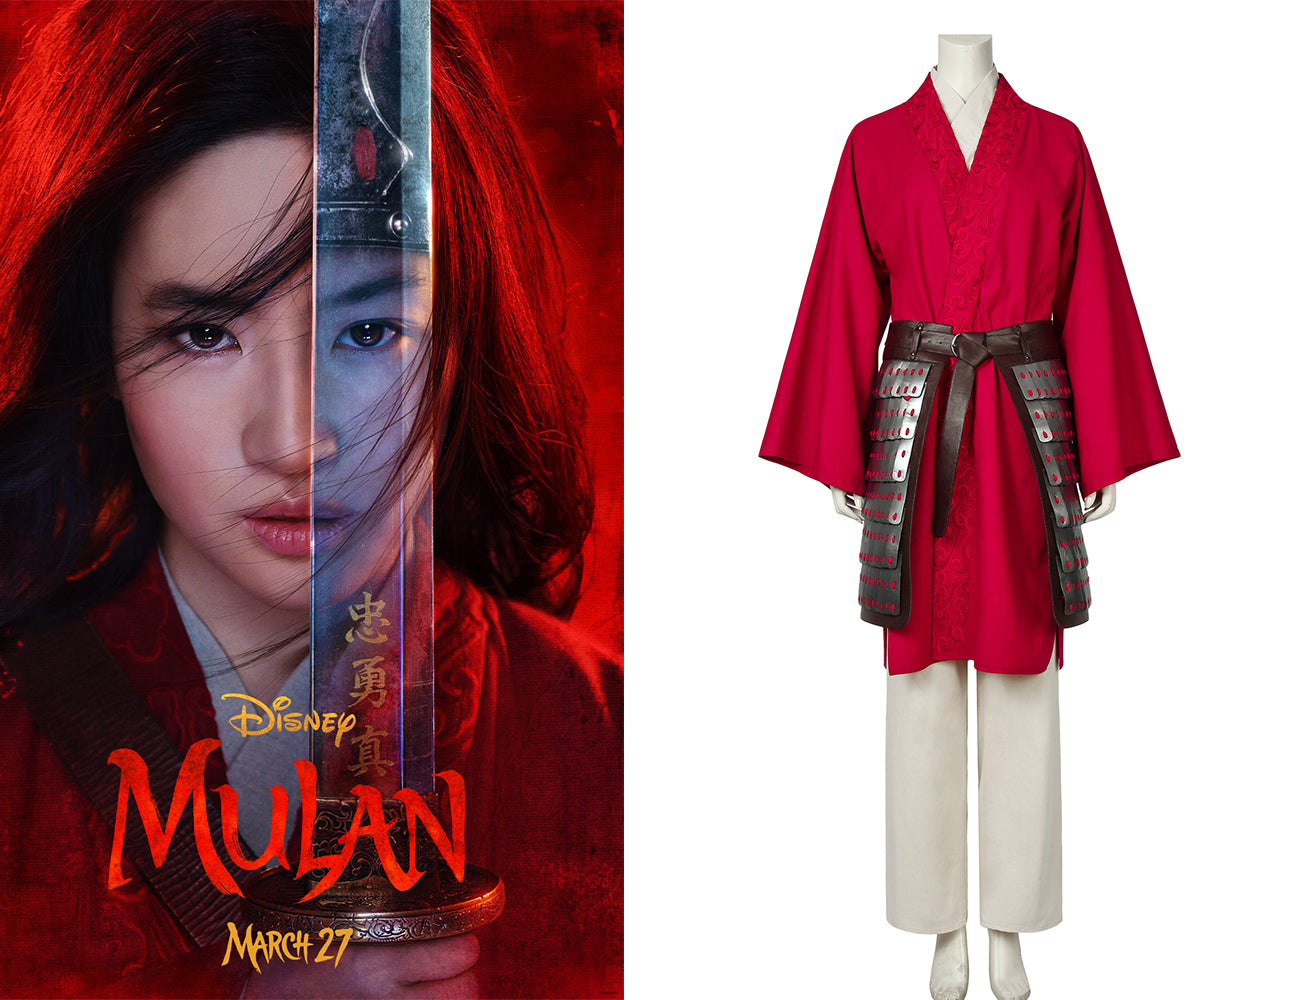 Cosplayflying Buy Disney Princess Mulan 2020 New Movie Cosplay Costume With Armor Accessories Full Set For Halloween Carnival